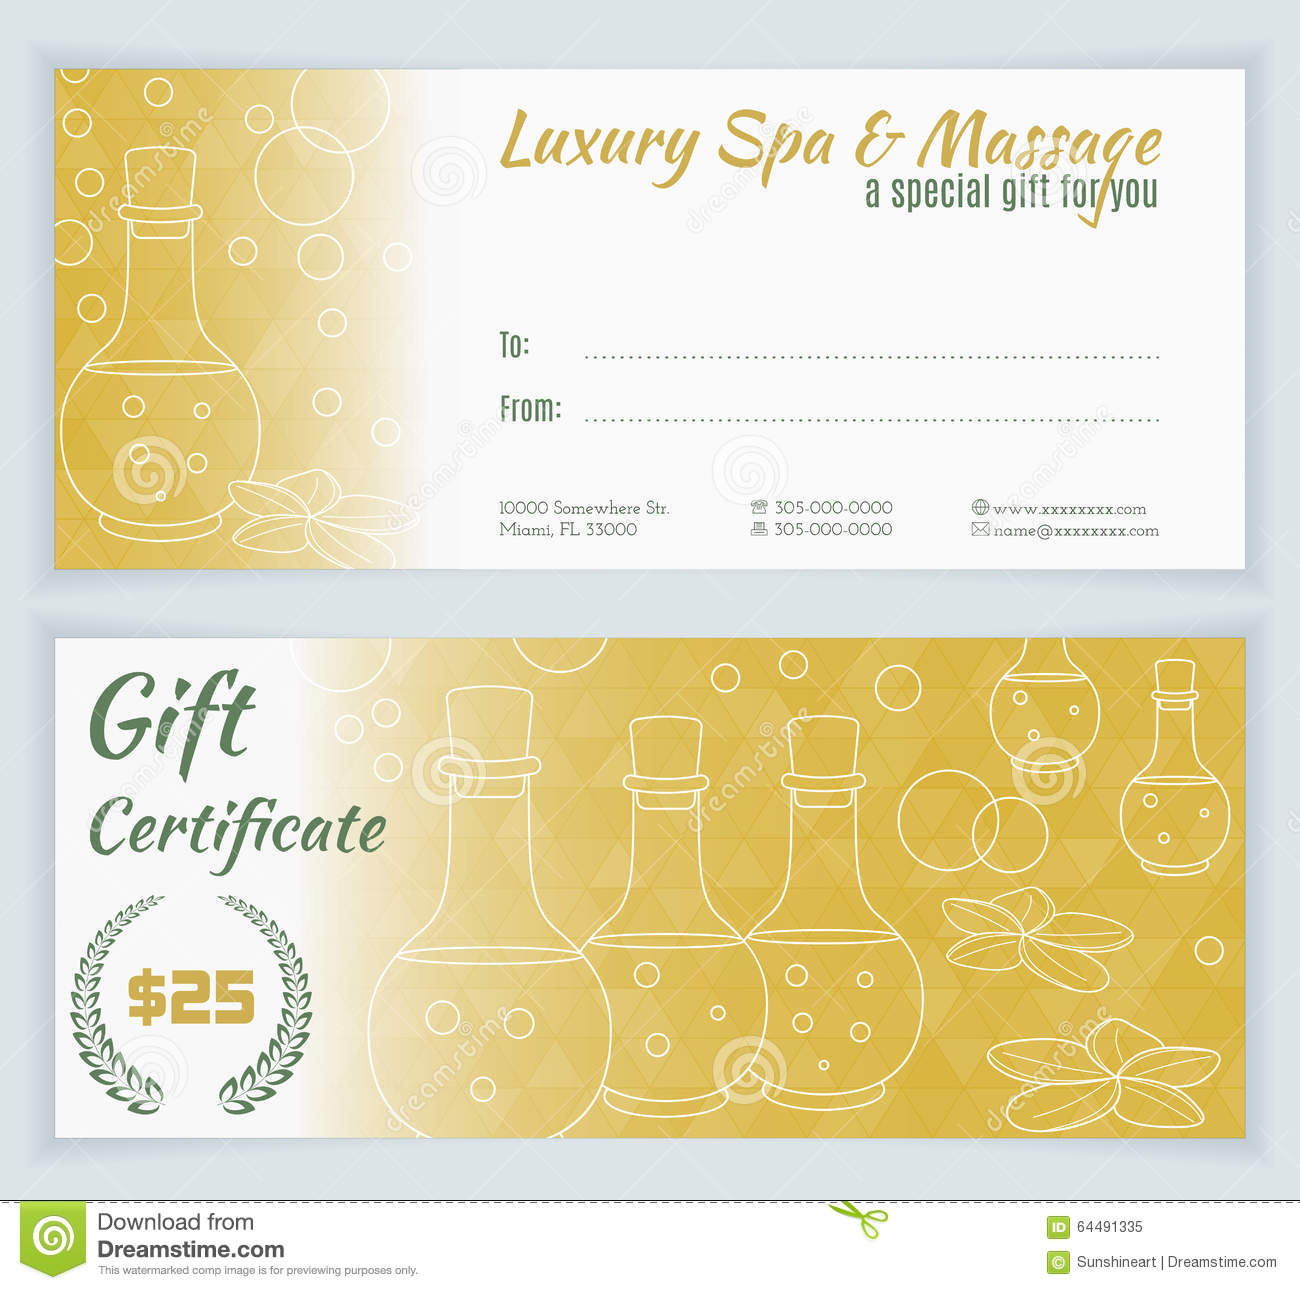 Money coupon template insrenterprises money coupon template xflitez Images